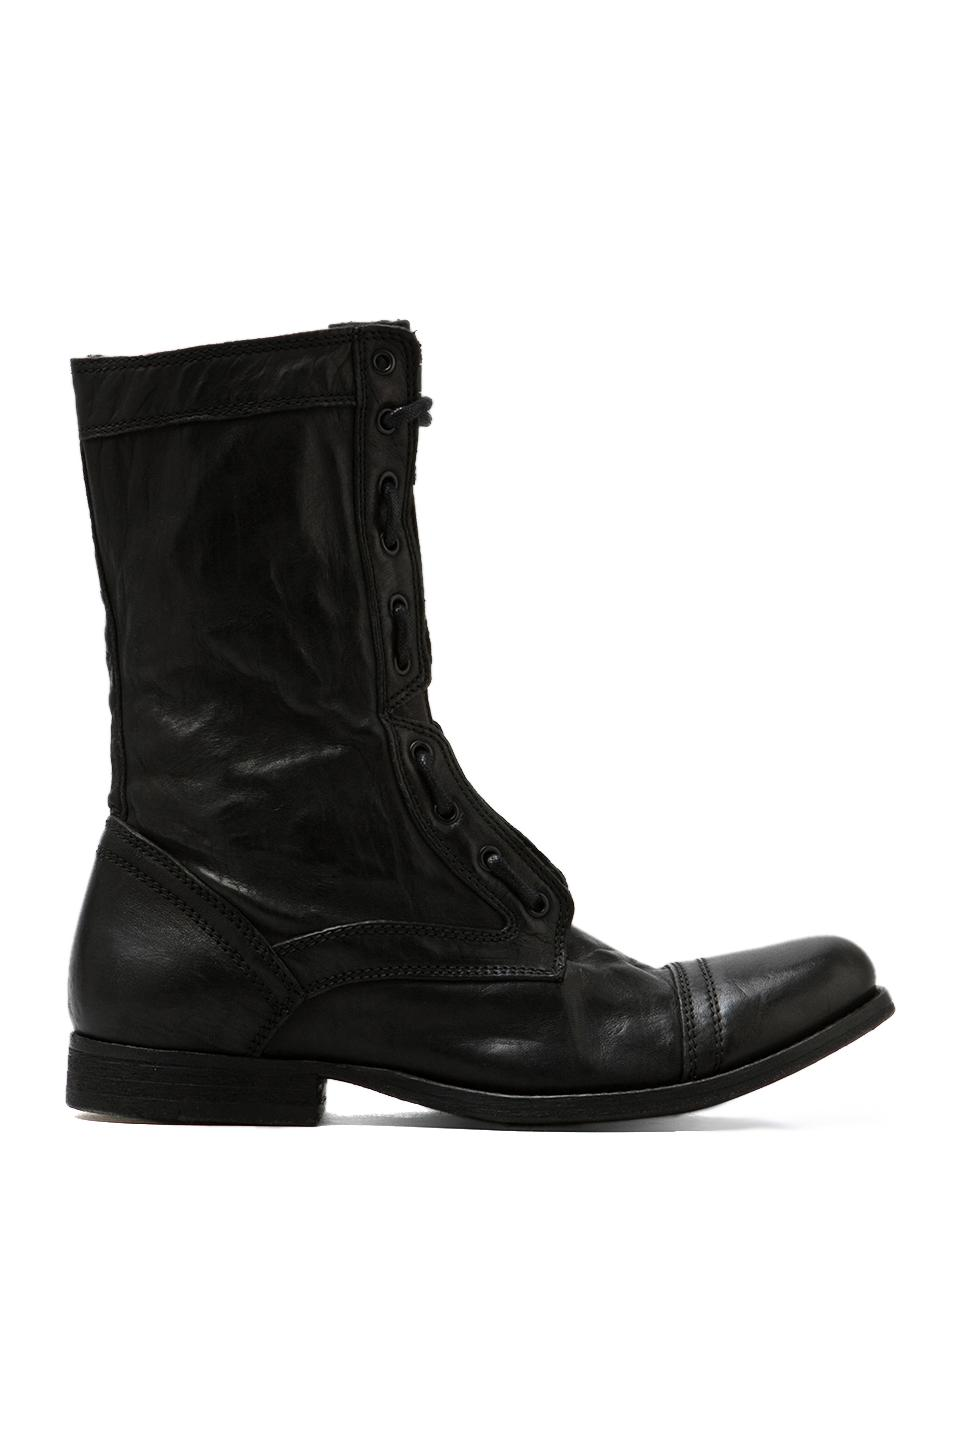 Rogue Delve Boots in Black